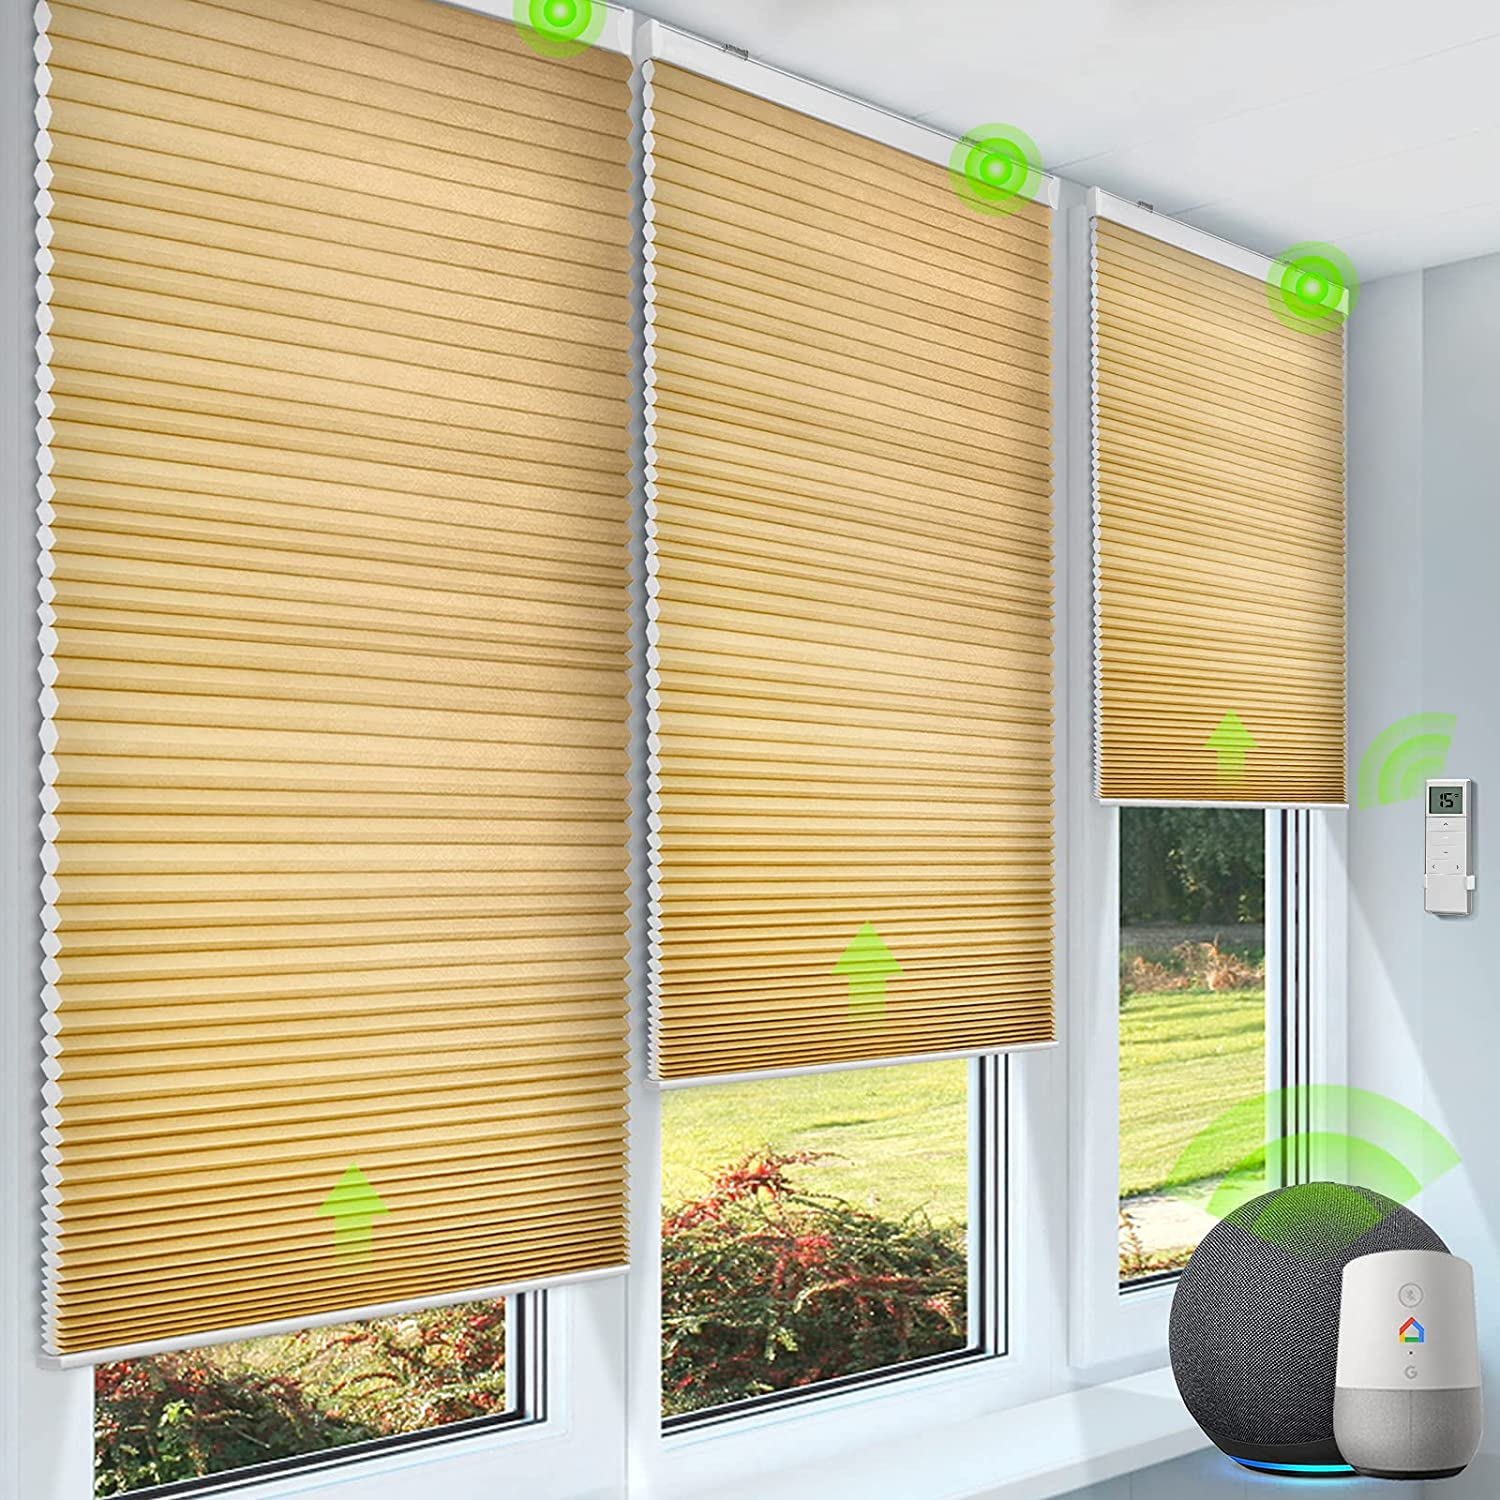 Super beauty product restock quality top Yoolax Max 55% OFF Smart Motorized Cellular Shade Alexa Compatible 60% with